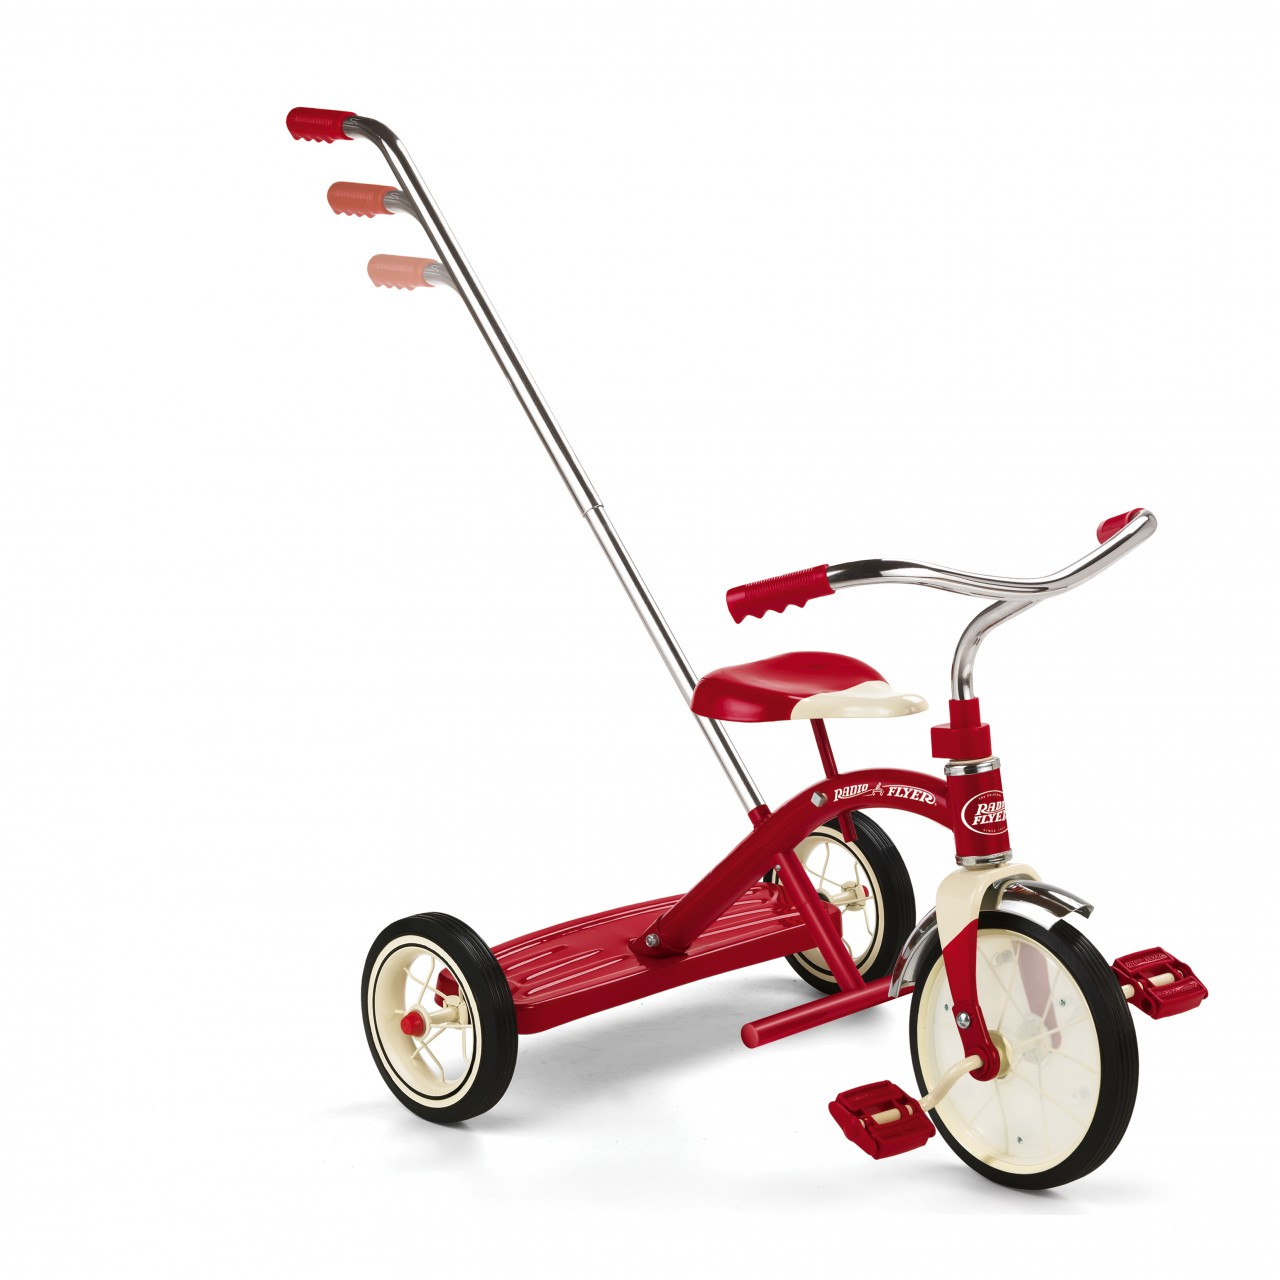 Buy Classic Red Trike With Push Handle By Radio Flyer